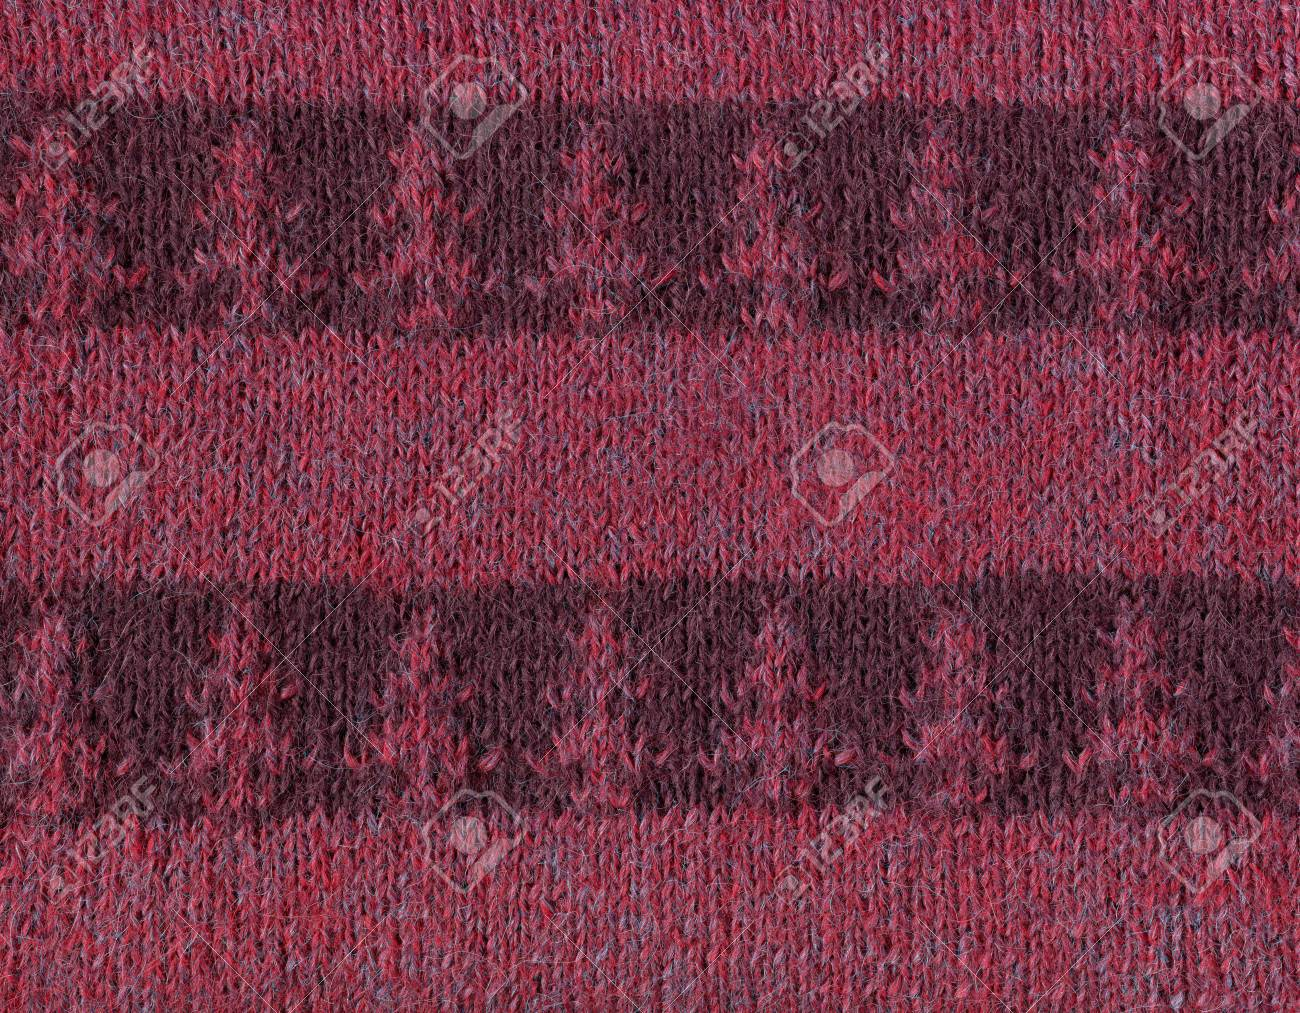 Striped knitted fabric with a pattern of fir trees.Decorative material, background, texture, wallpaper - 69666414